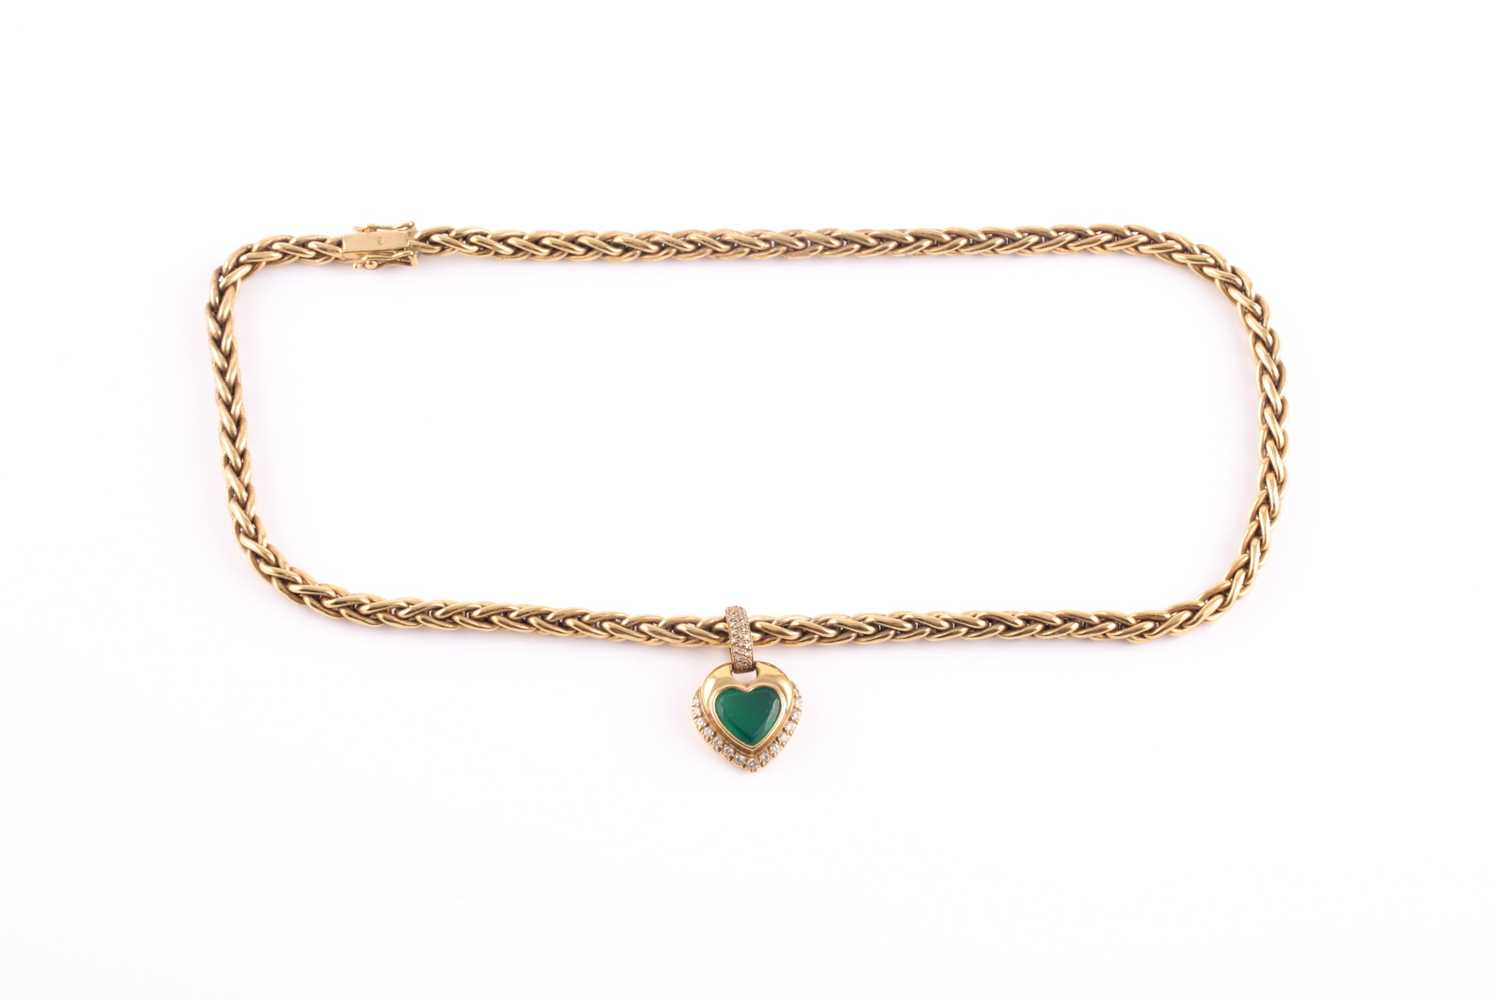 An 18ct yellow gold, diamond, and green stone heart-shaped pendant, with pave-set diamond suspension - Image 4 of 5